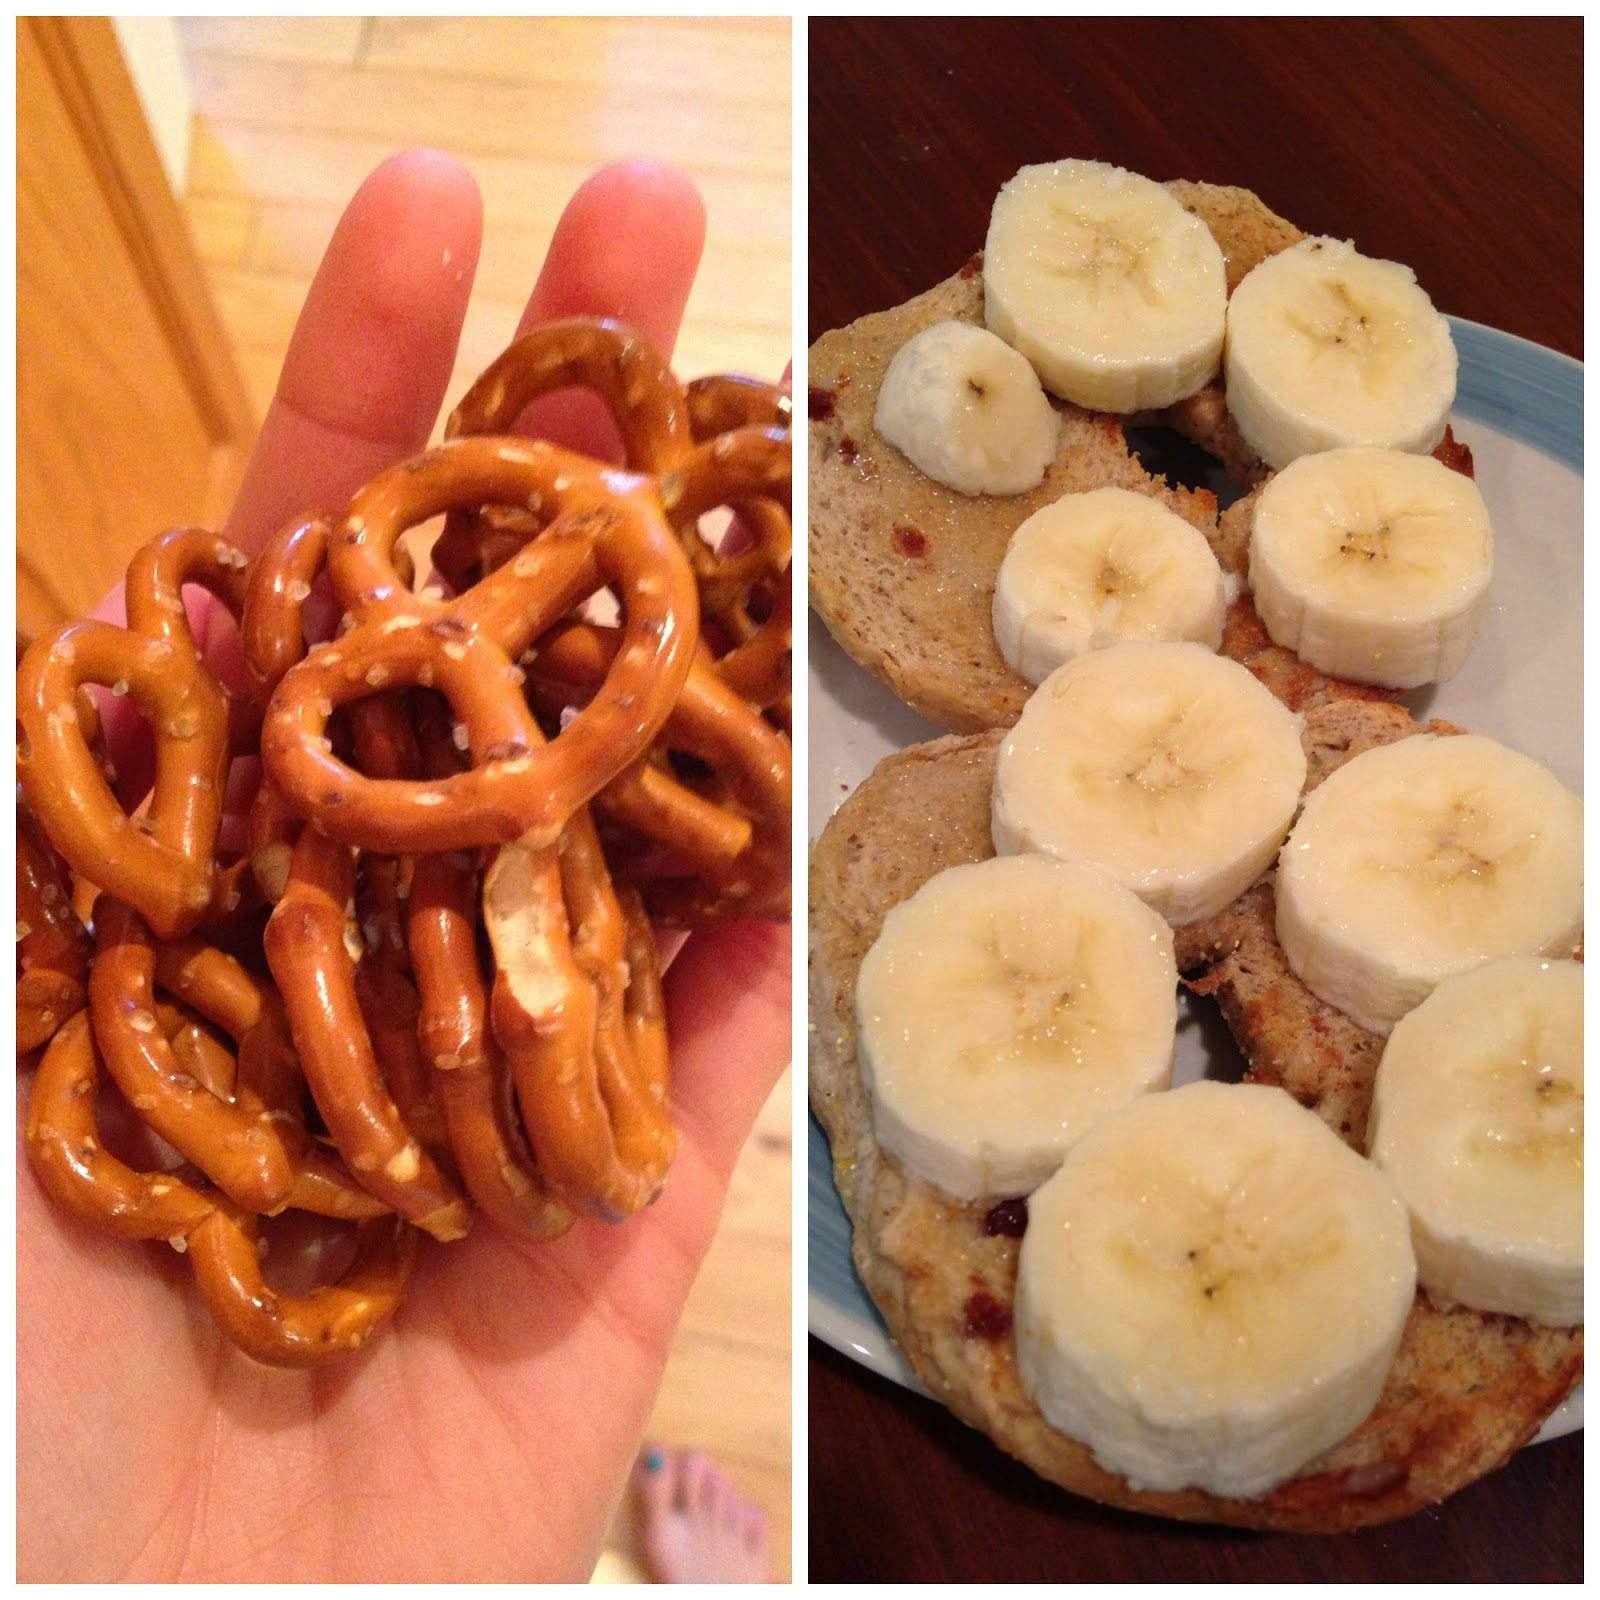 Pretzels and Bananas Are Great Pre-Run Foods